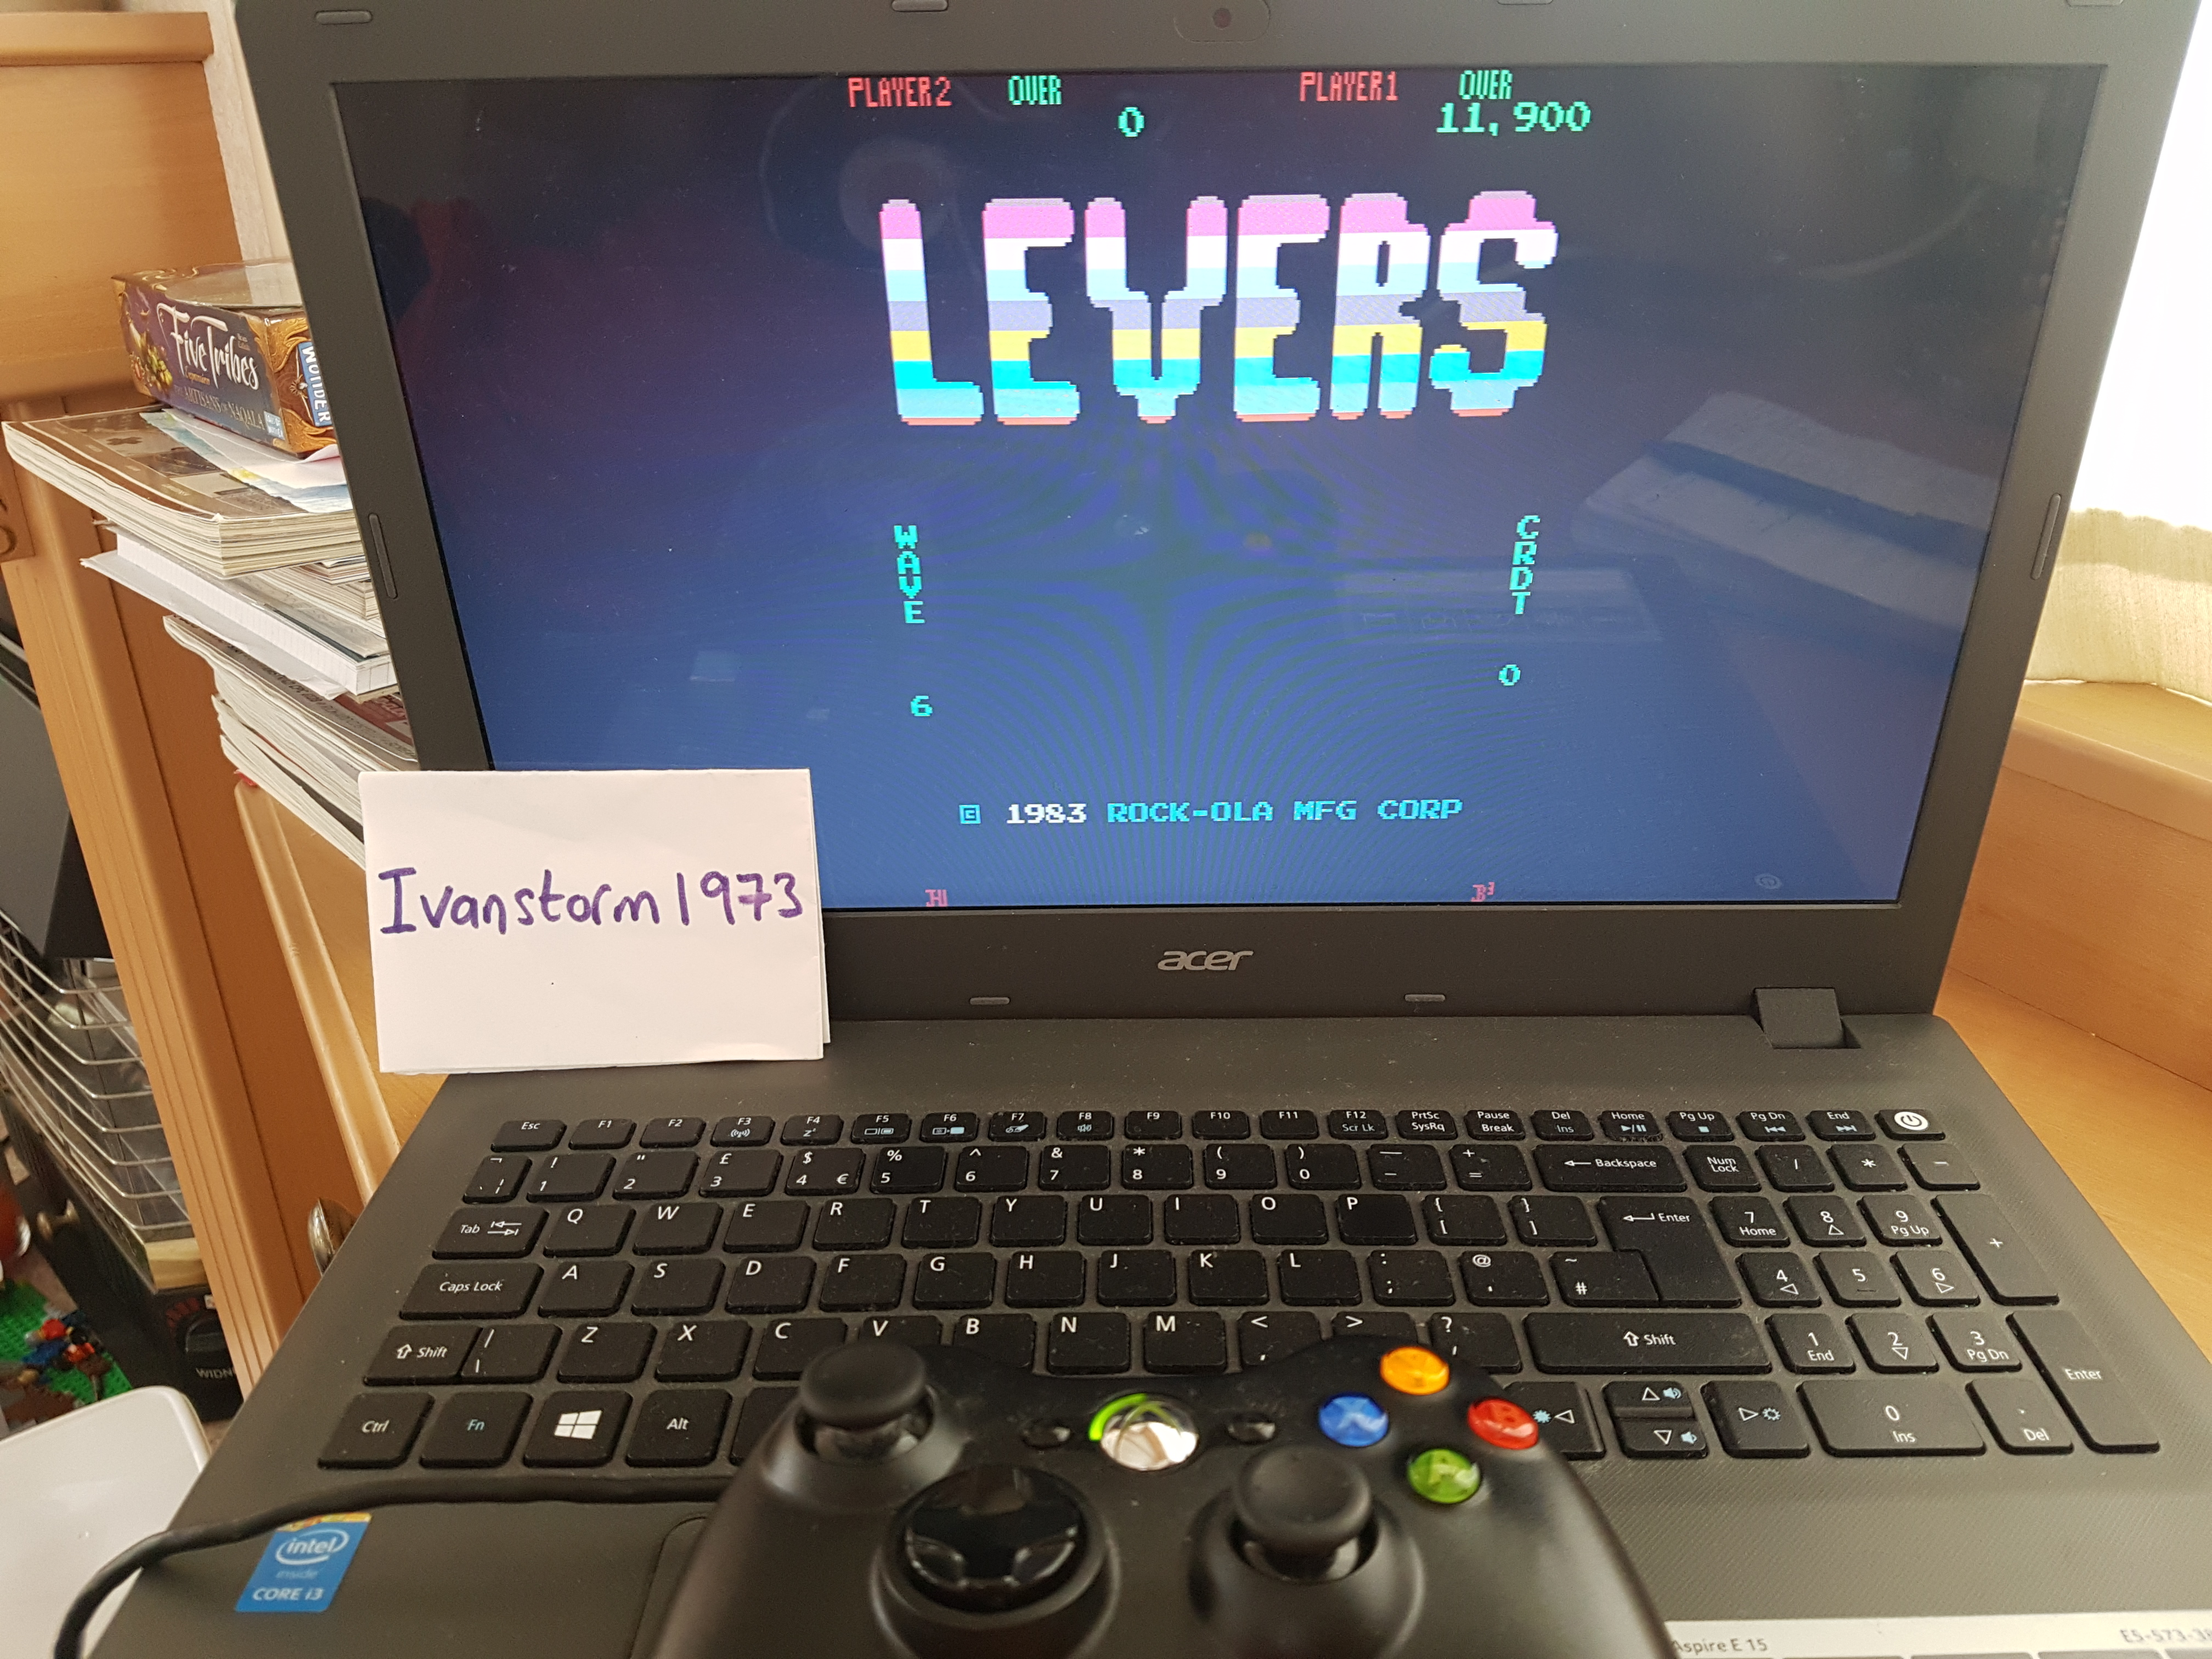 Ivanstorm1973: Levers [levers] (Arcade Emulated / M.A.M.E.) 11,900 points on 2017-08-06 11:49:00